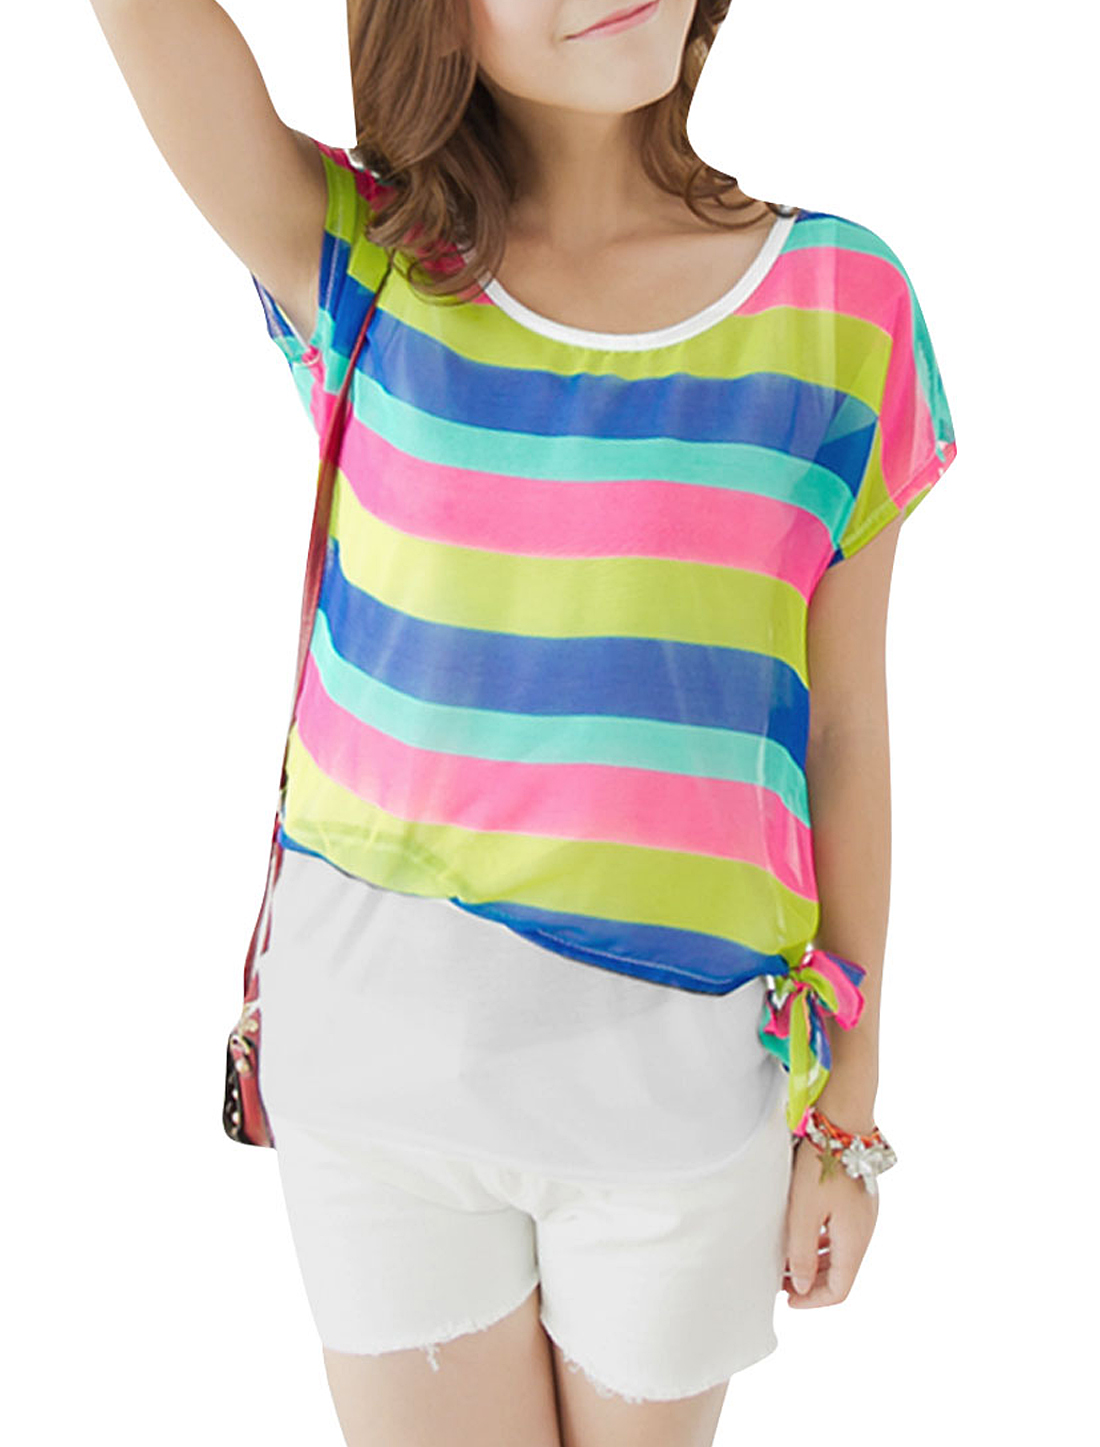 Lady Pullover Stripes Pattern Semi-sheer Lime Green Fuchsia Blouse XS